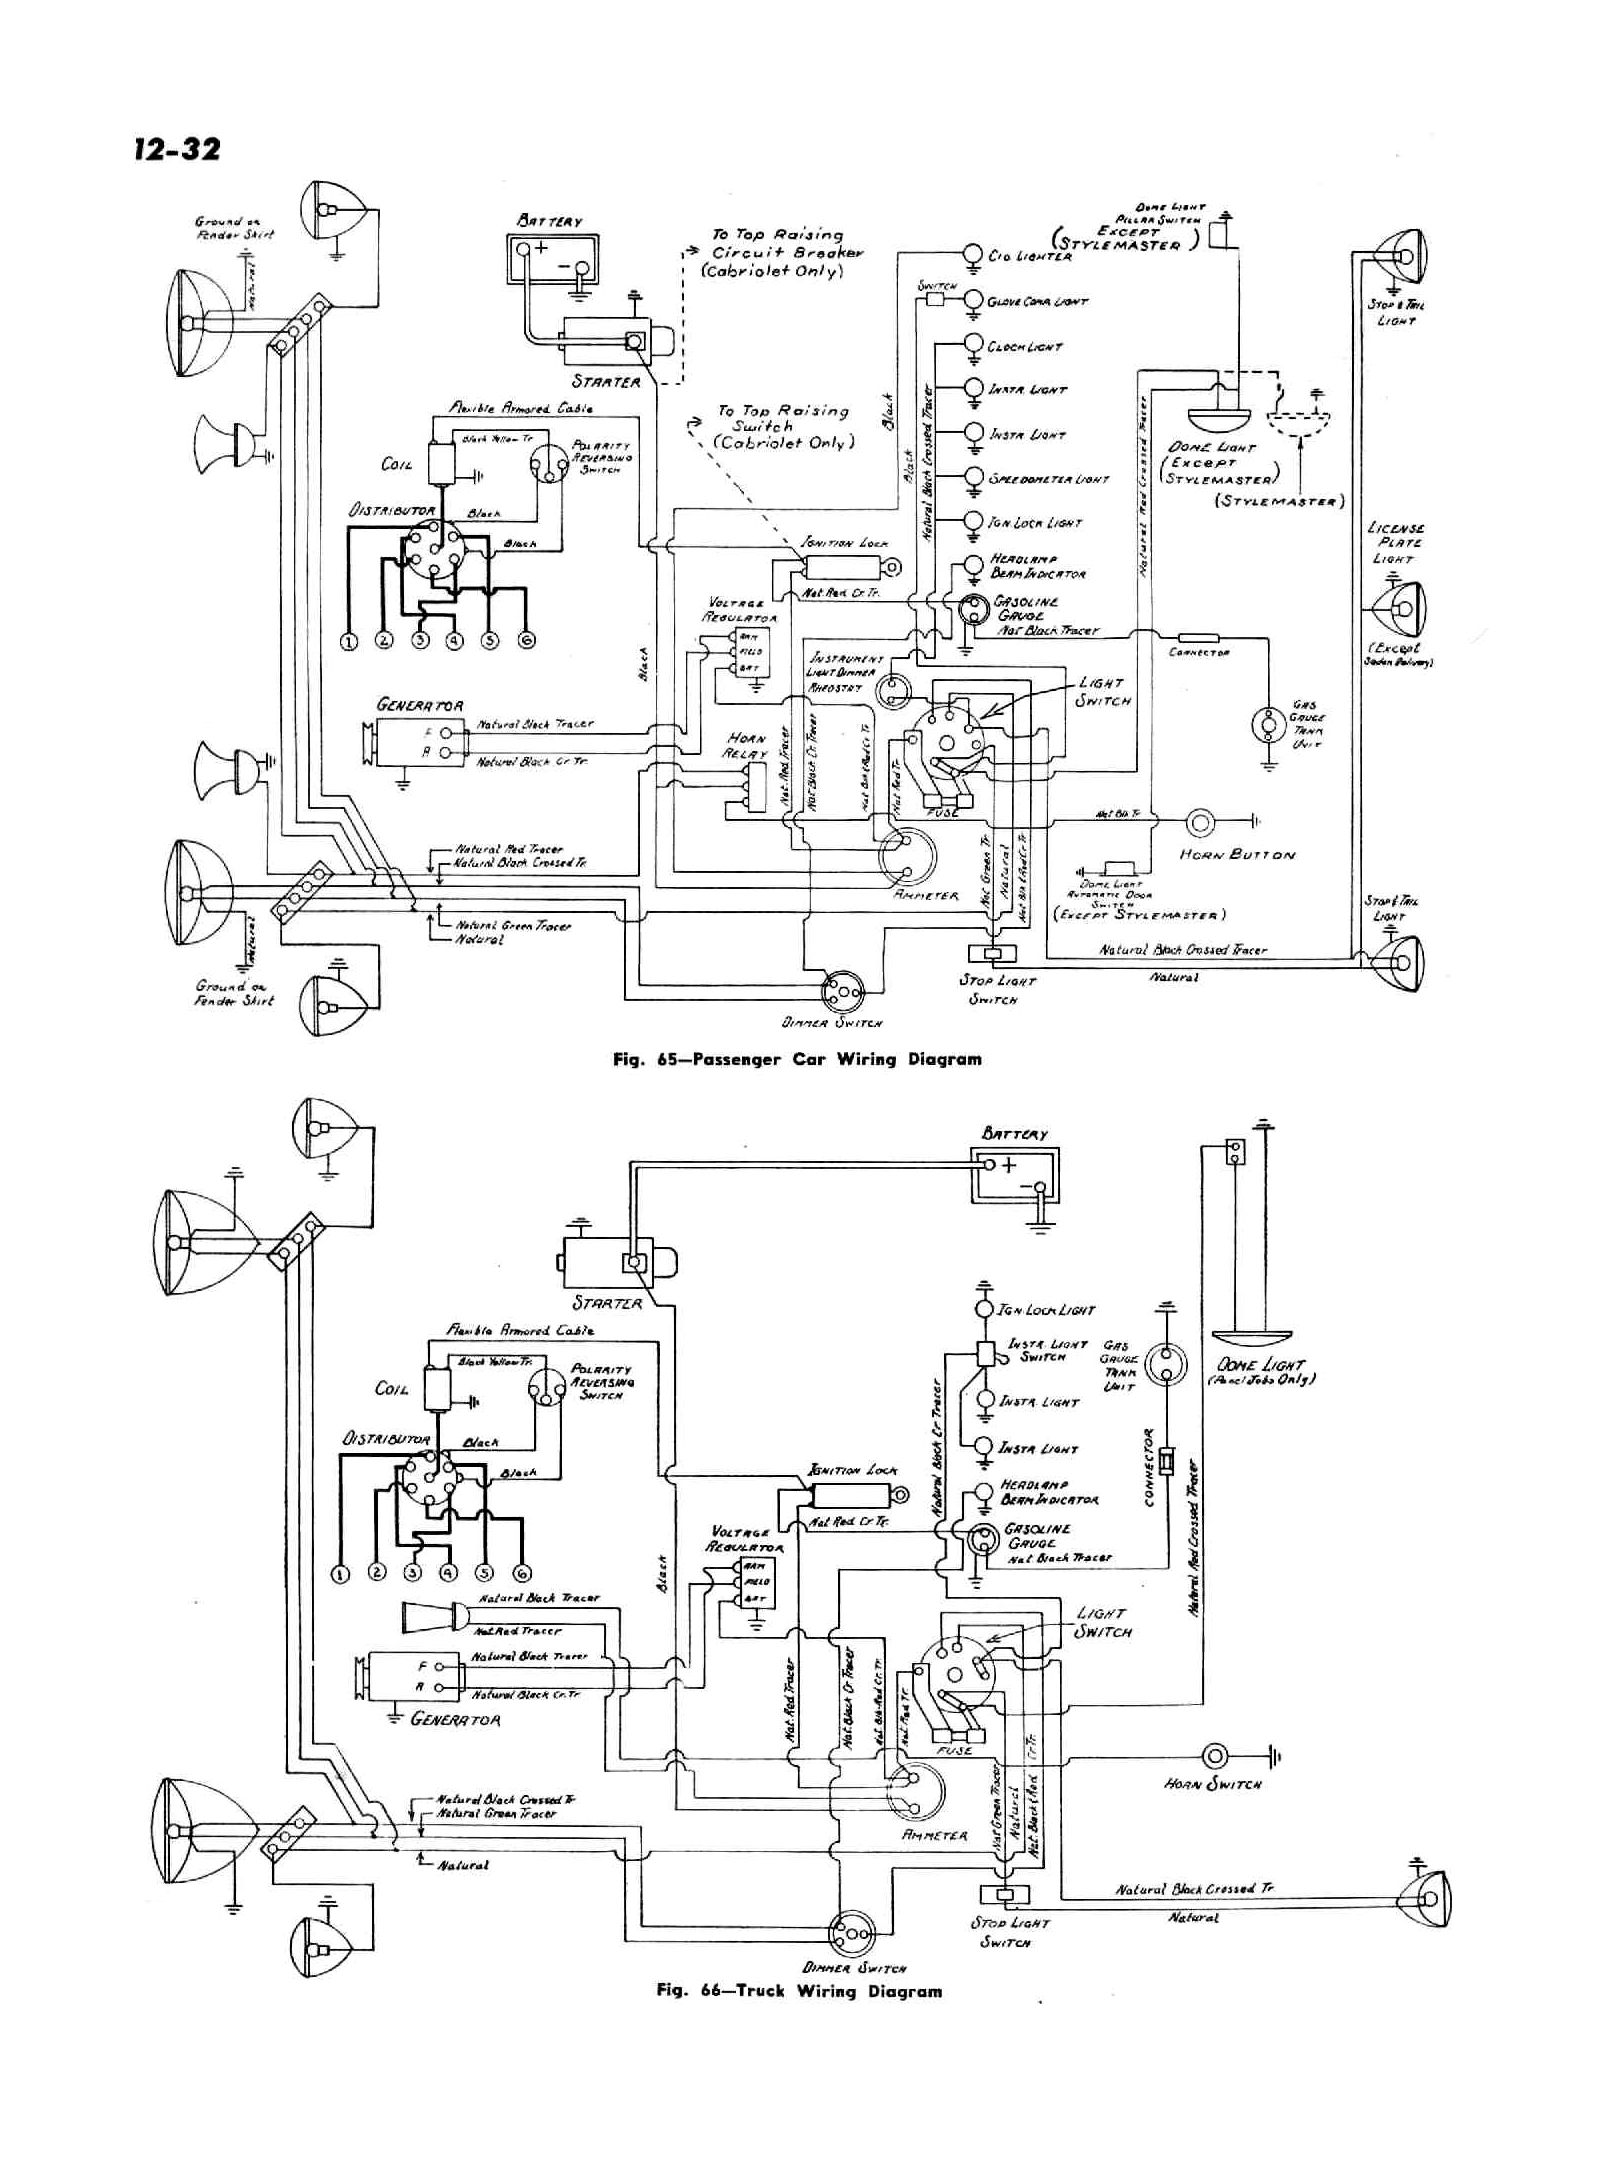 1951 Chevy Deluxe Wiring Diagram Diy Diagrams Additional For The 1950 Chevrolet Convertible 1946 Passenger Car Truck Wire Center U2022 Rh Linxglobal Co Hot Rod